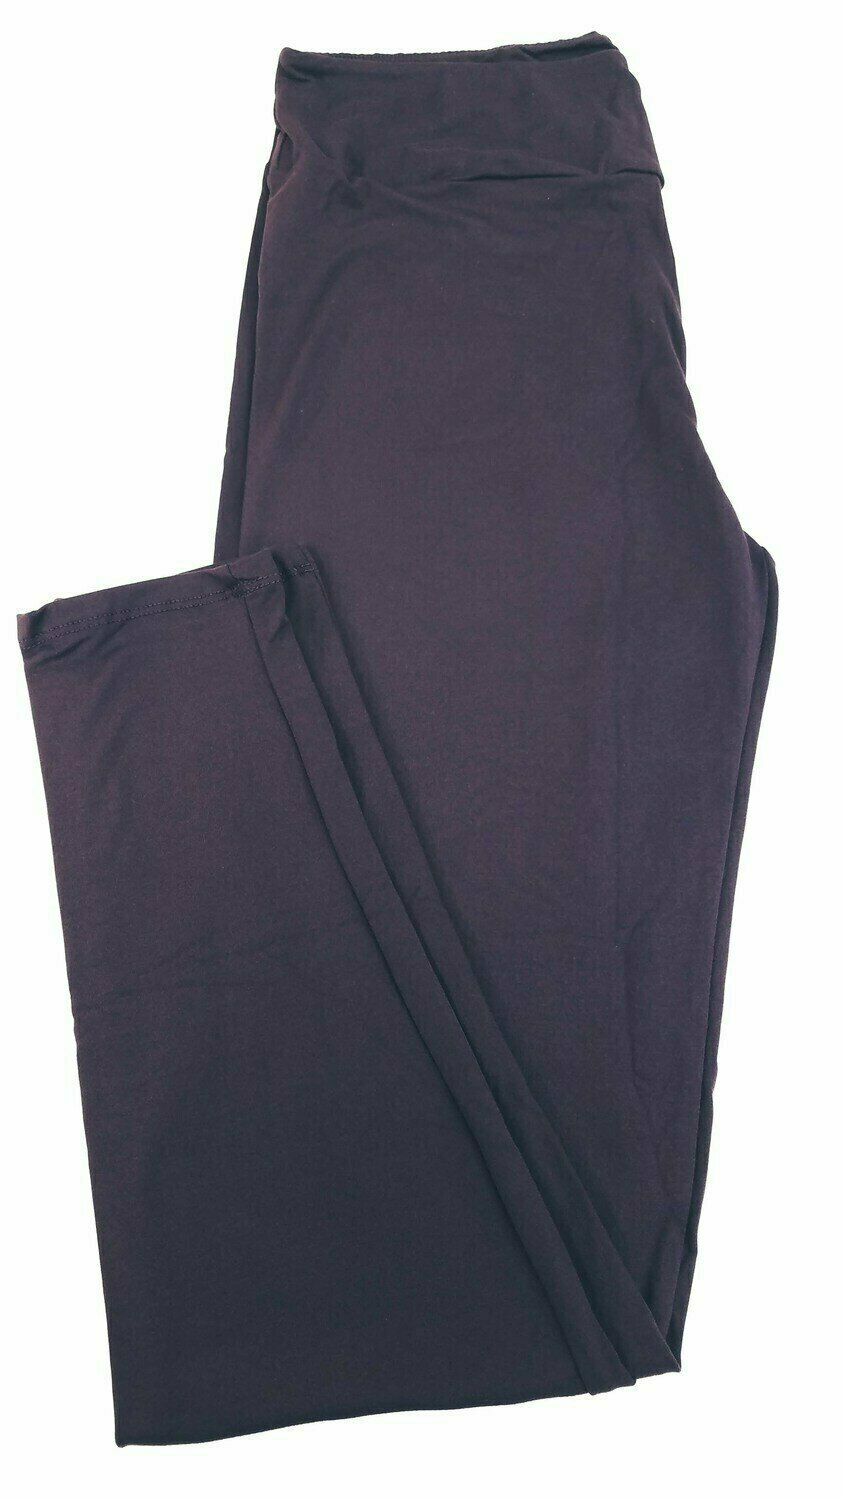 One Size (OS) Solid Potent Purple LuLaRoe Adult Womens Leggings fit Sizes 2-10